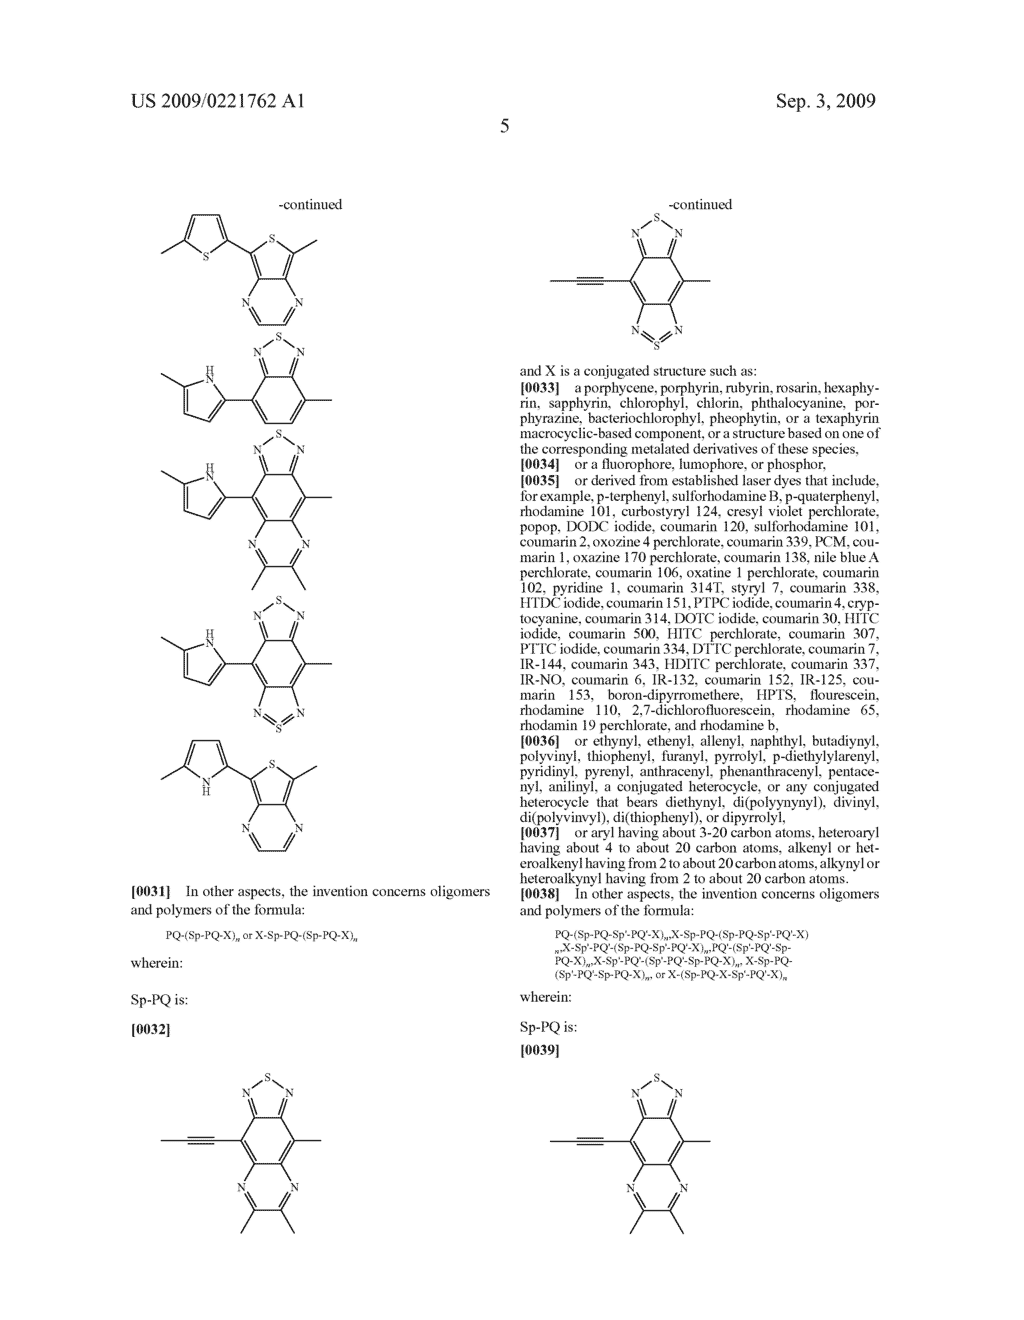 NOVEL CONJUGATED MATERIALS FEATURING PROQUINOIDAL UNITS - diagram, schematic, and image 20